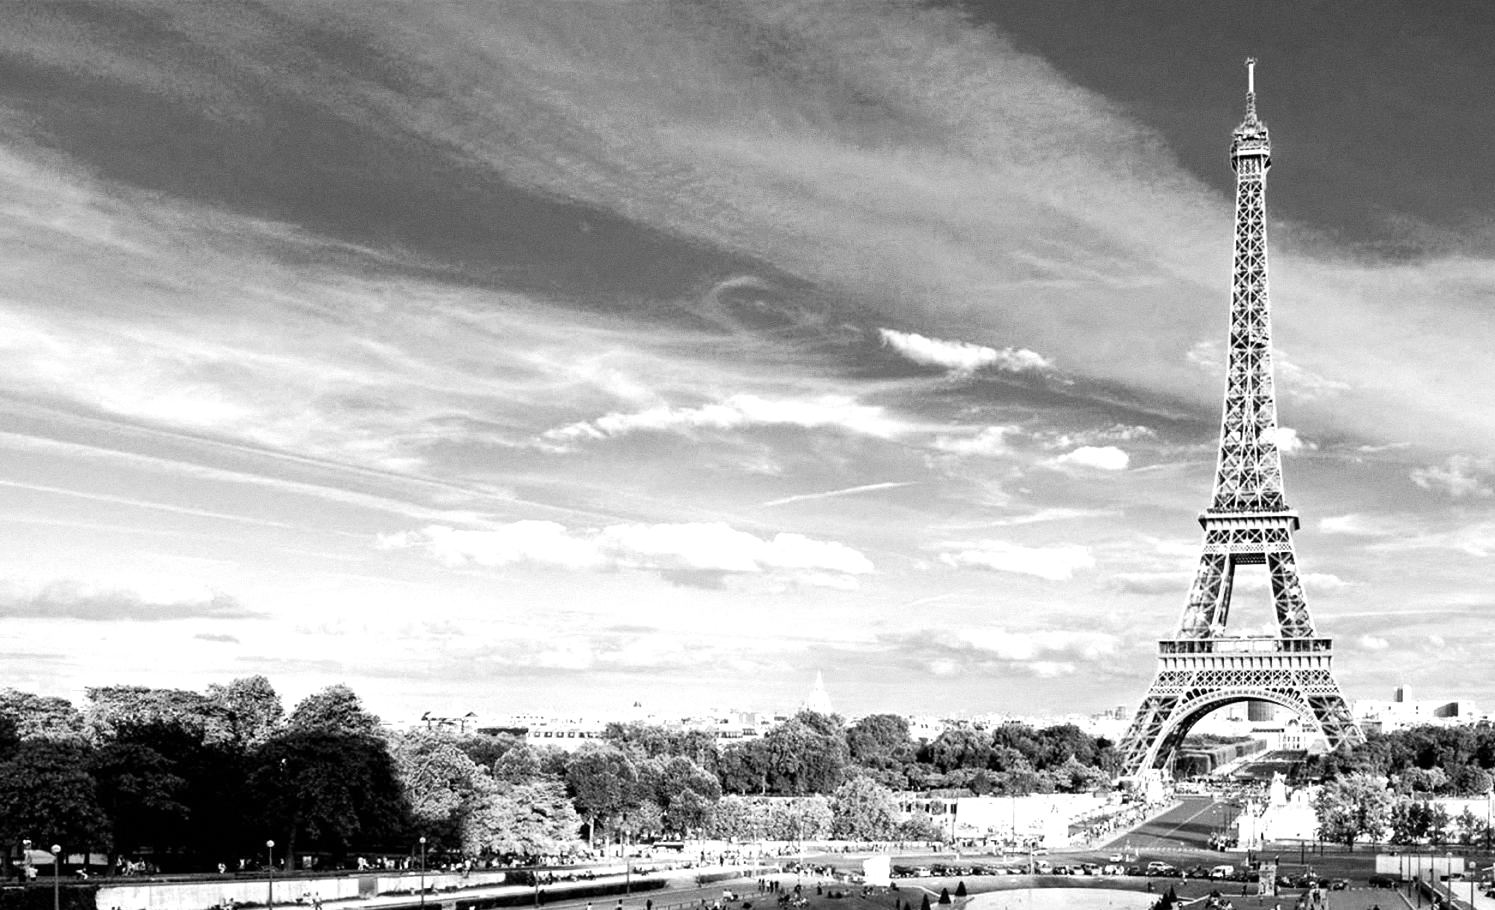 Eiffel-tower-paris-black-and-white-photos-01 - Copy_edited.jpg